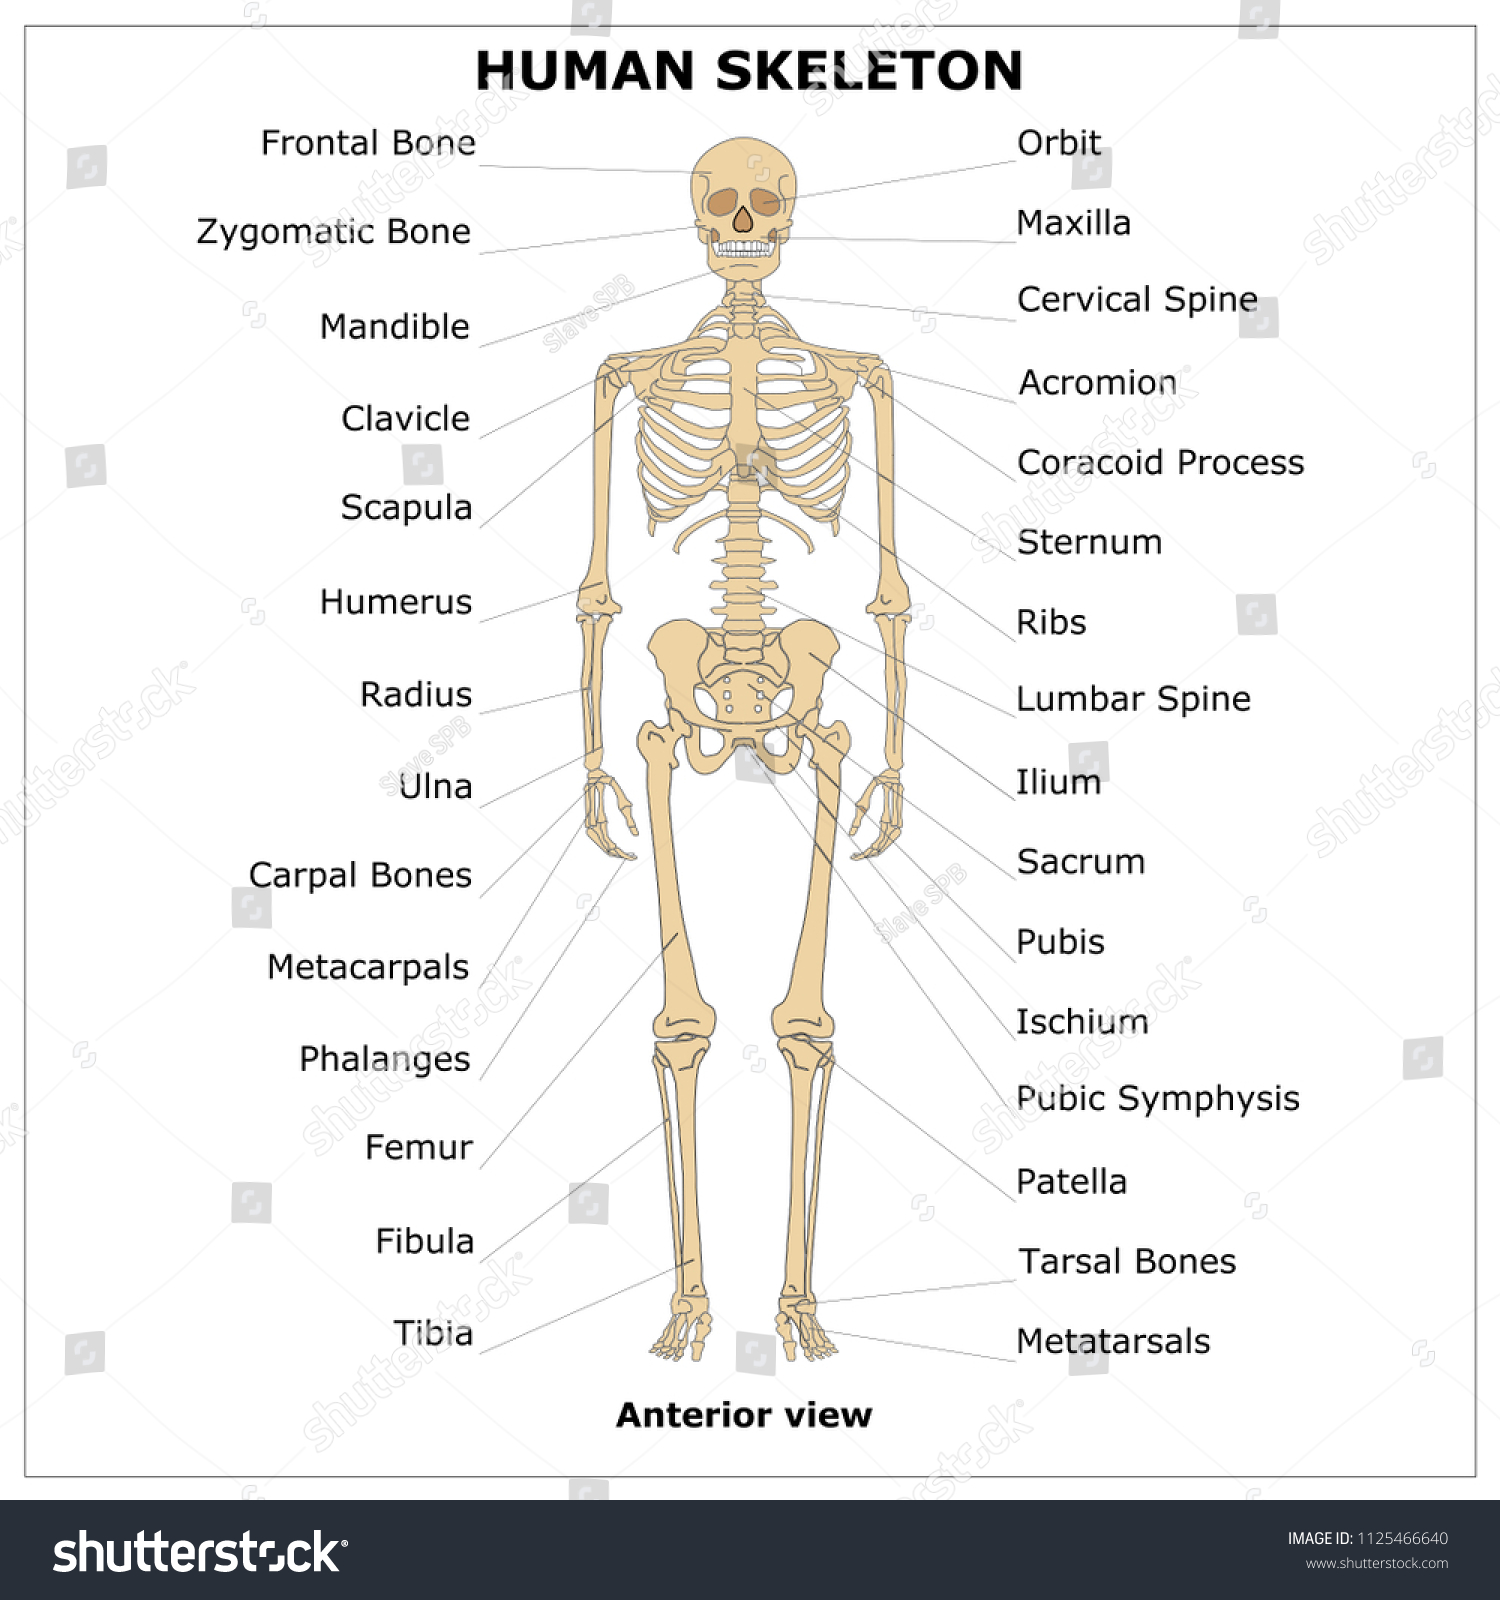 Human Skeleton Anterior Viewcolor Vector Illustration Stock Vector